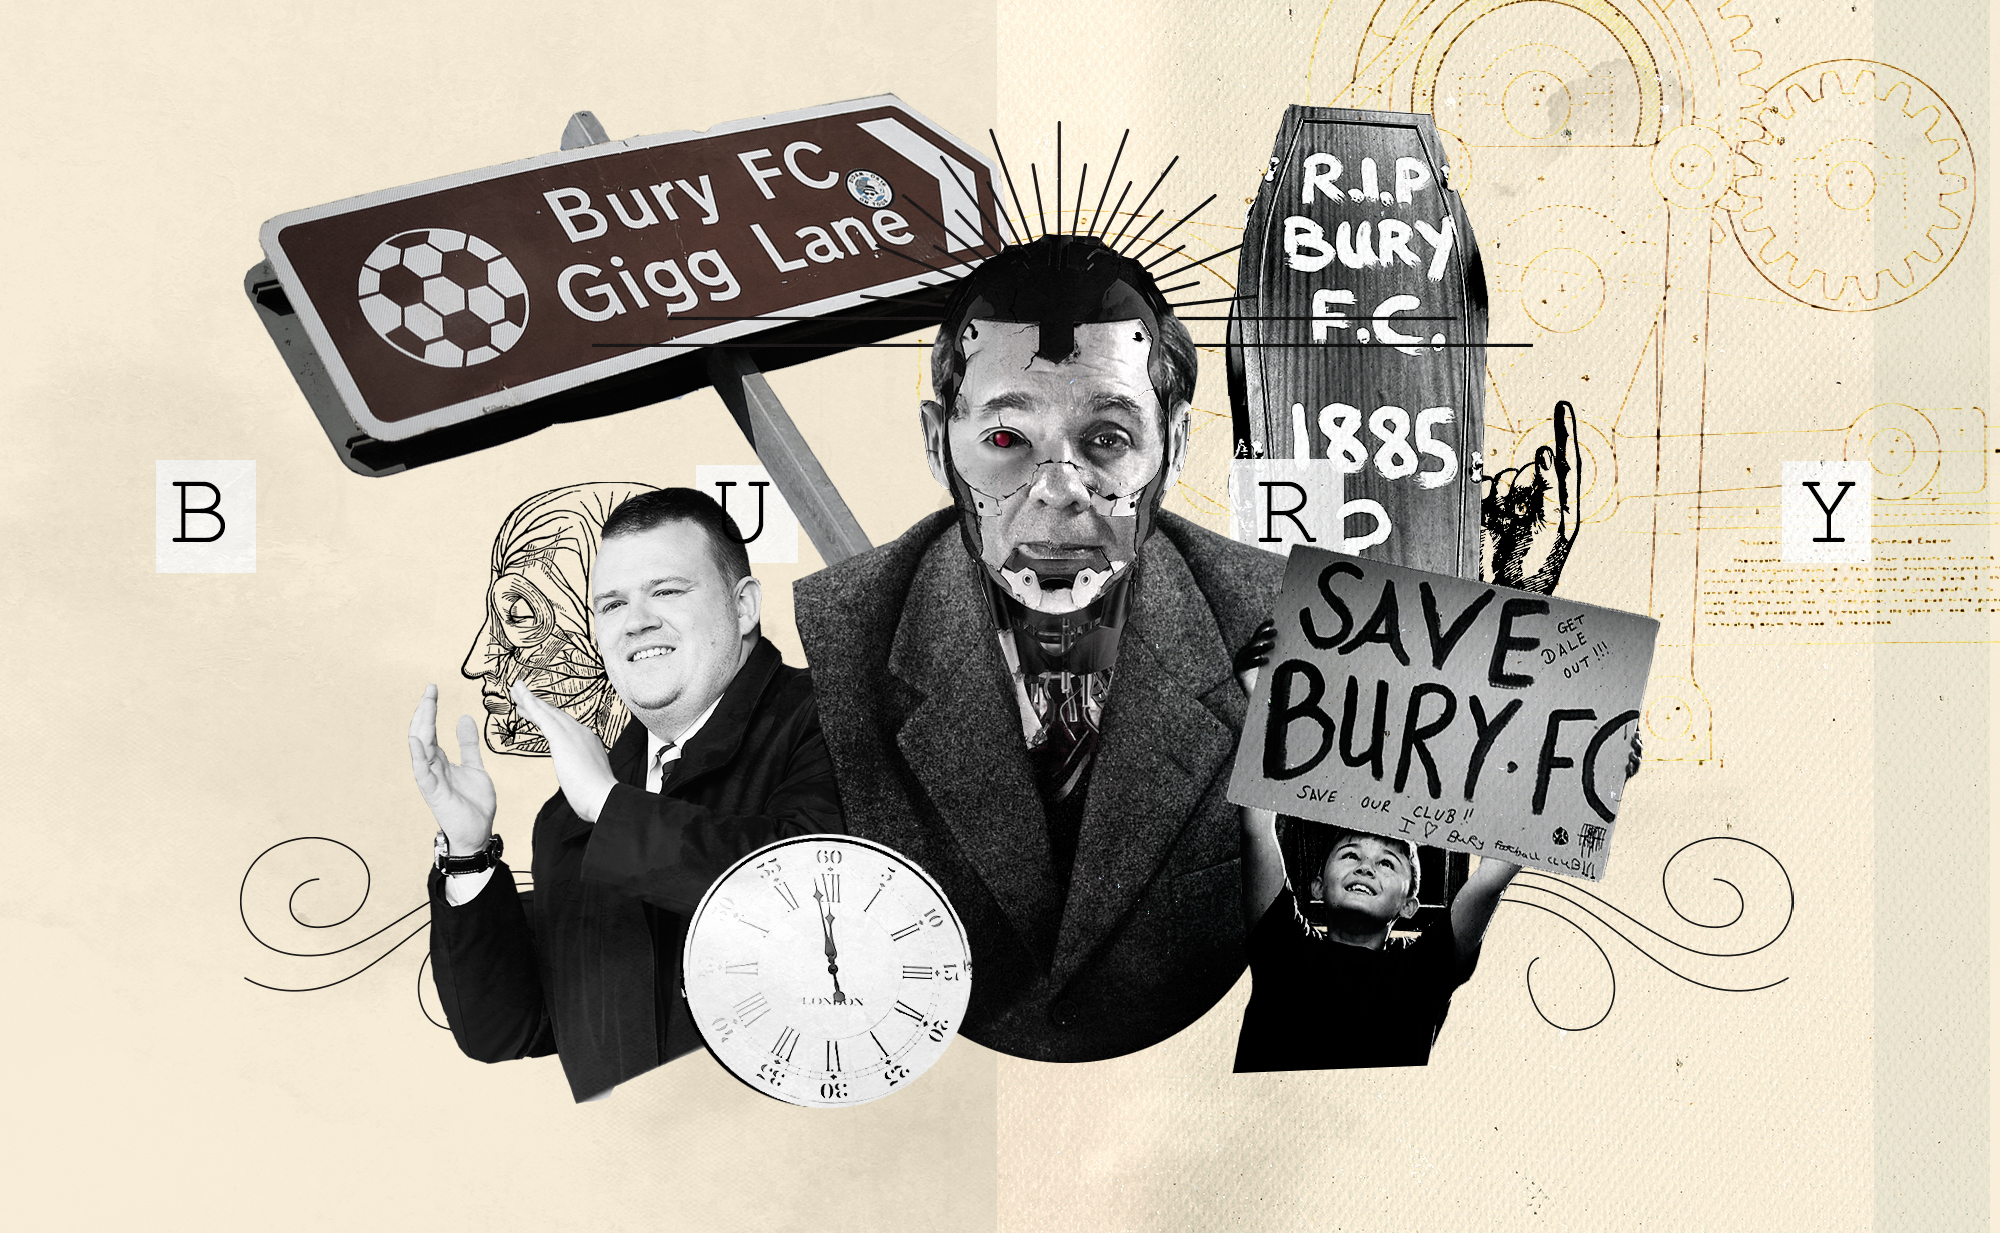 """Collage of various elements in an avant-garde style. A child holding a """"Save Bury FC sign"""" and a coffin with  RIP Bury FC"""" painted on it are some of them."""